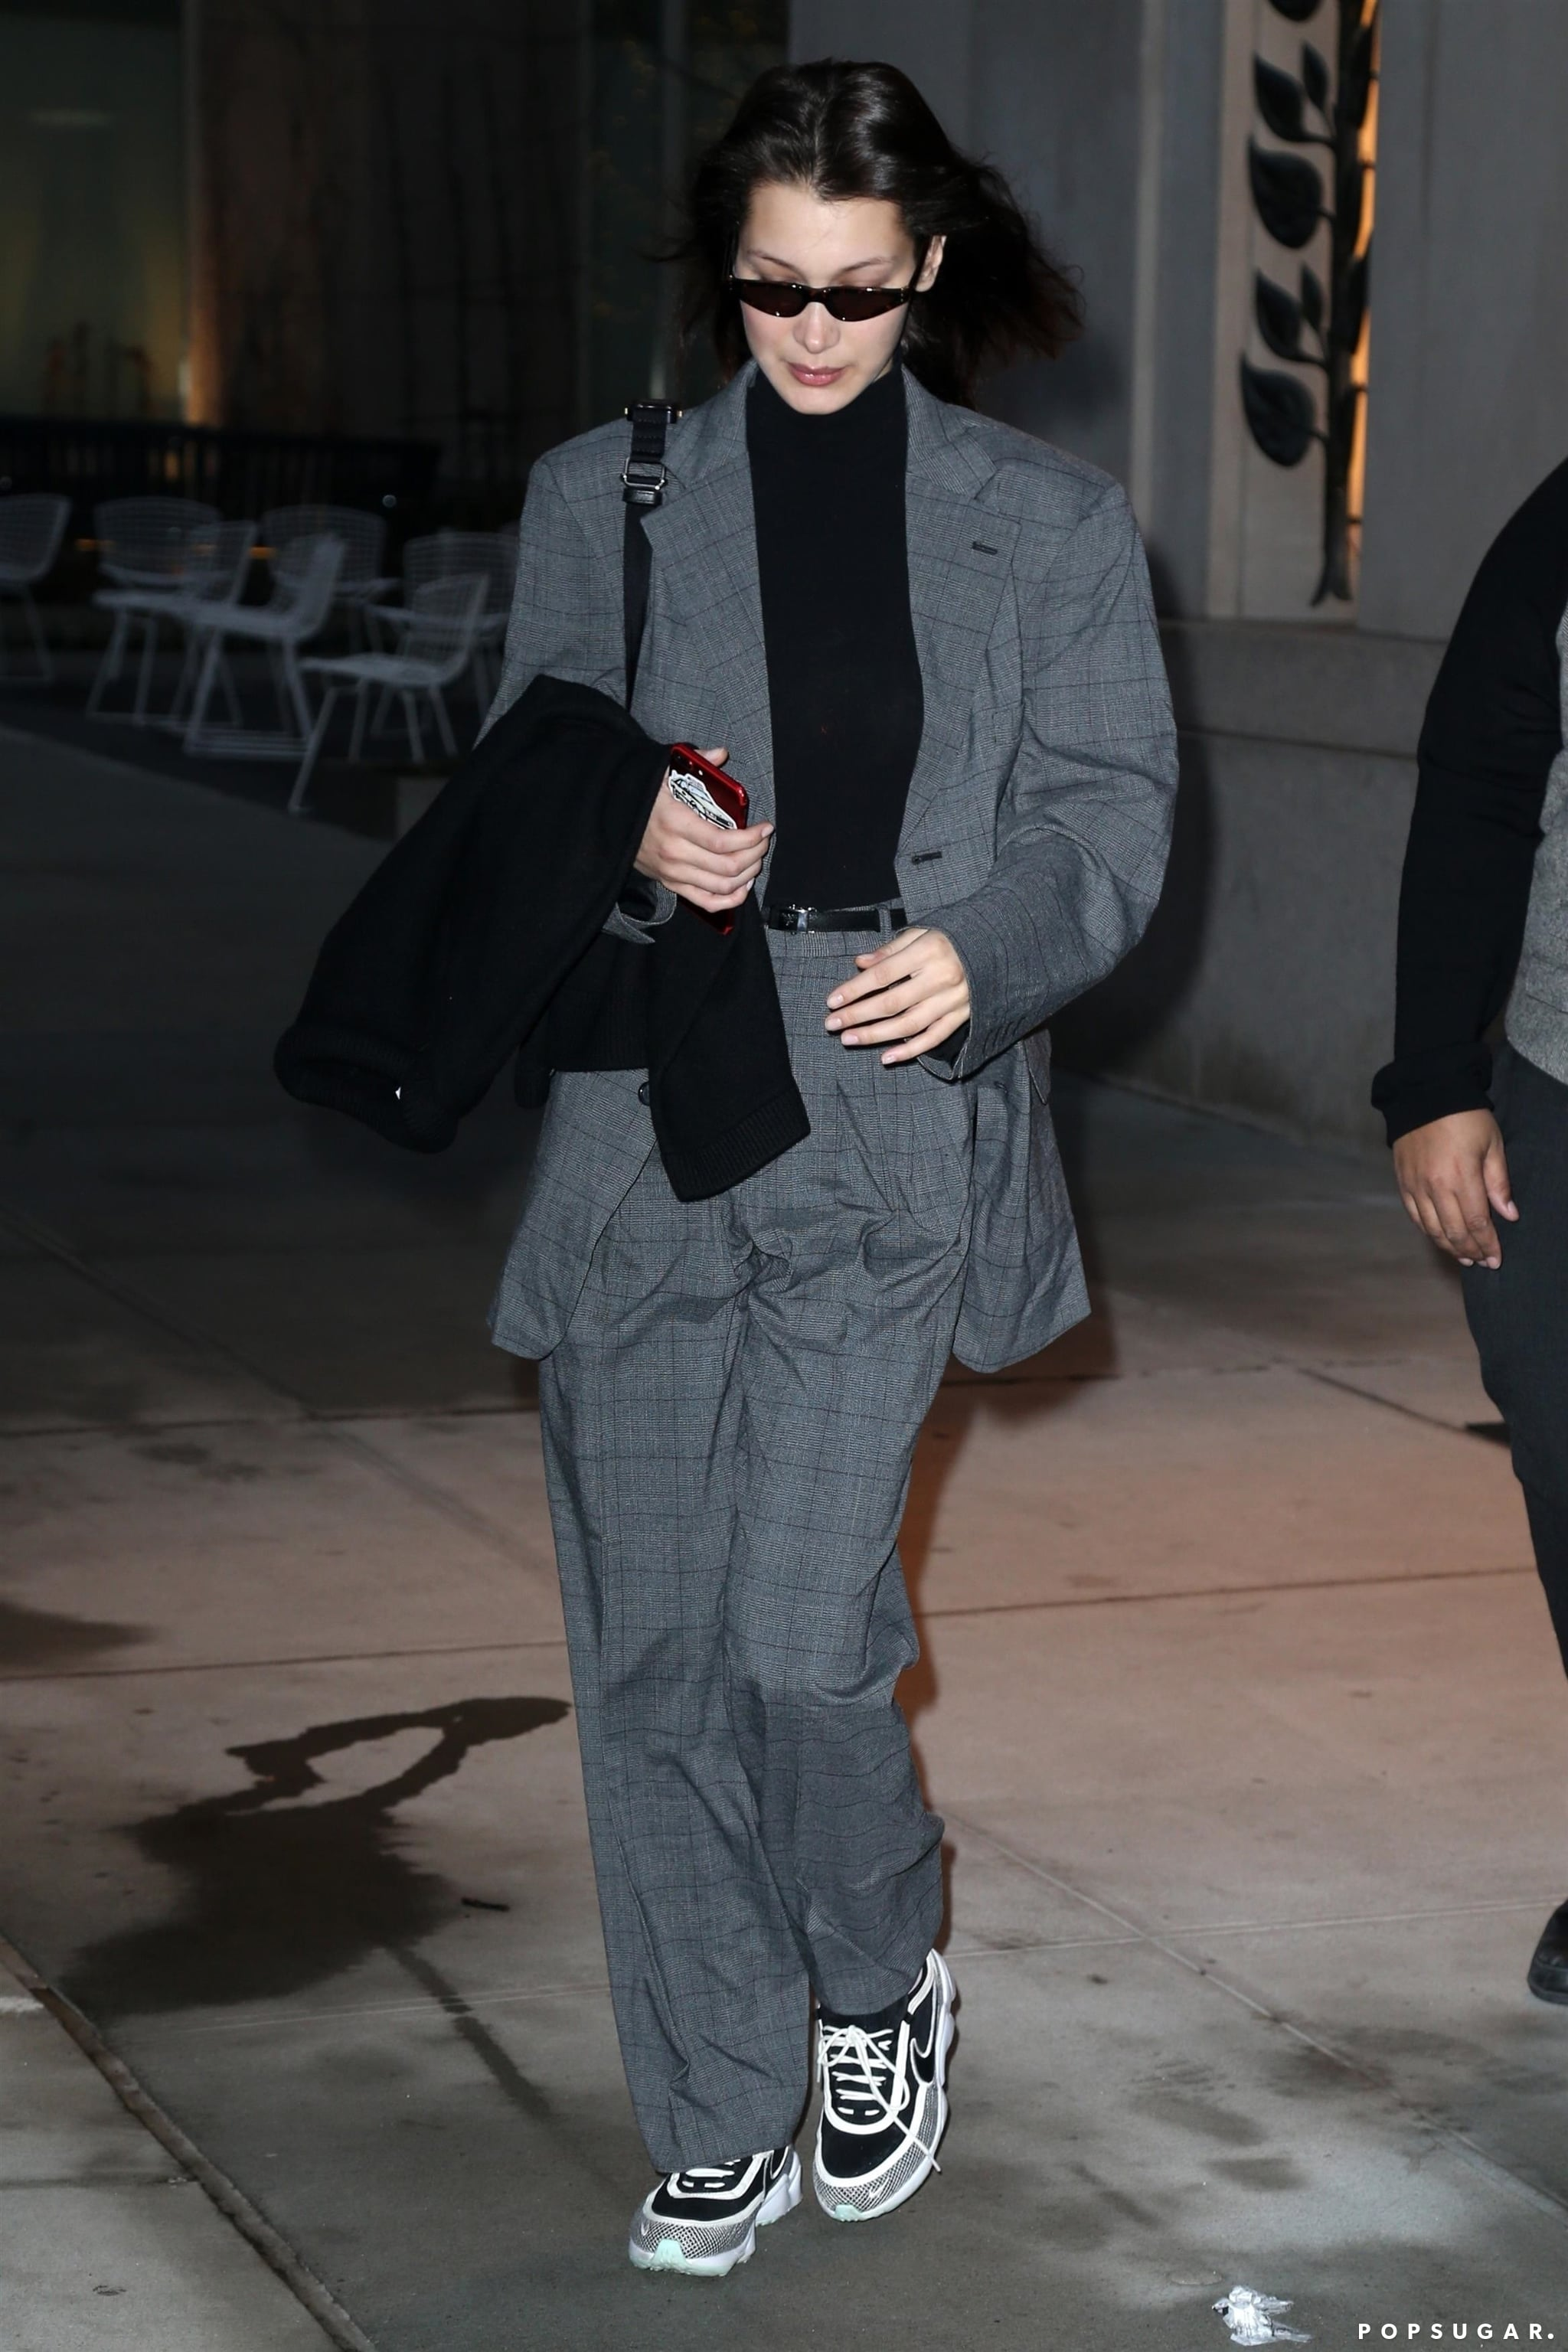 Bella Hadid Wearing a Suit With Nike